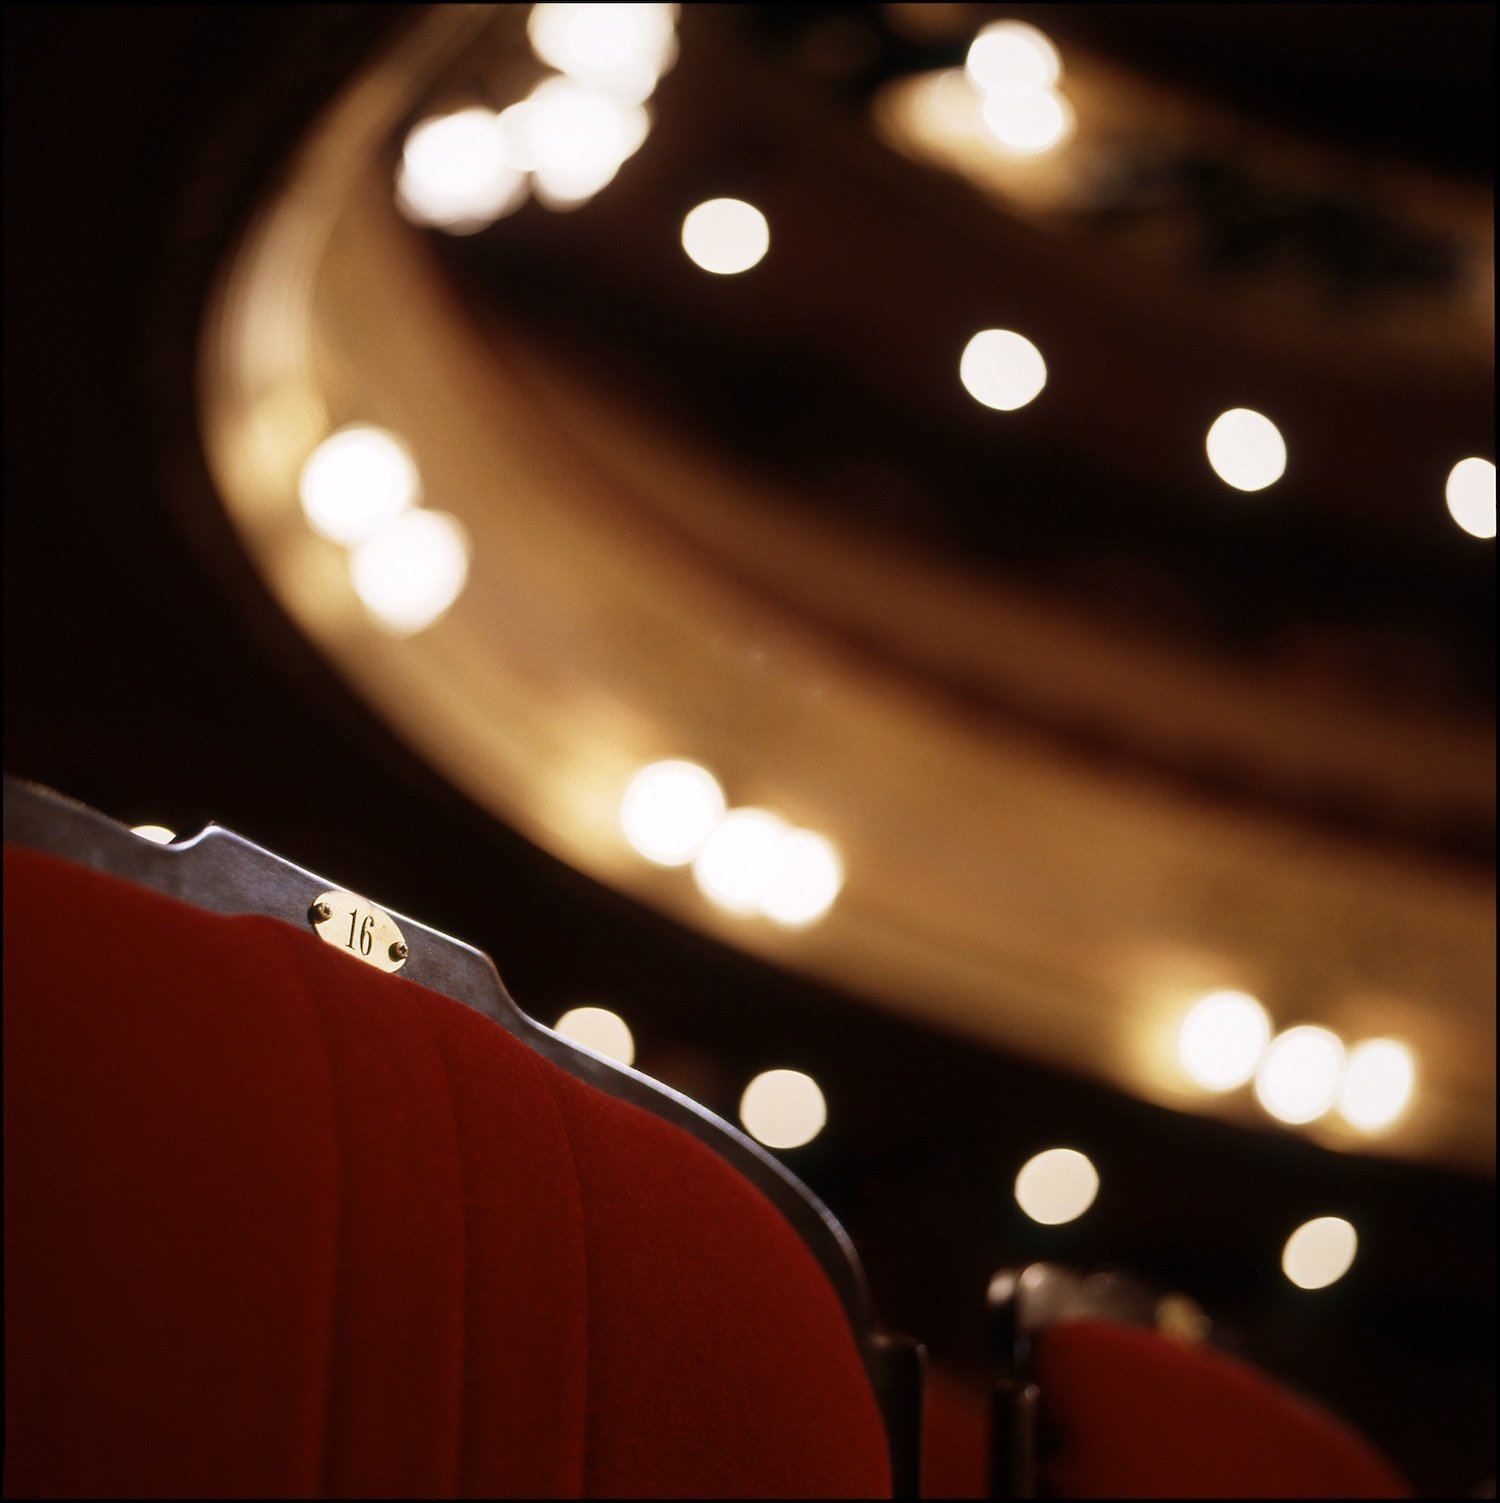 Seats of the Rennes opera house